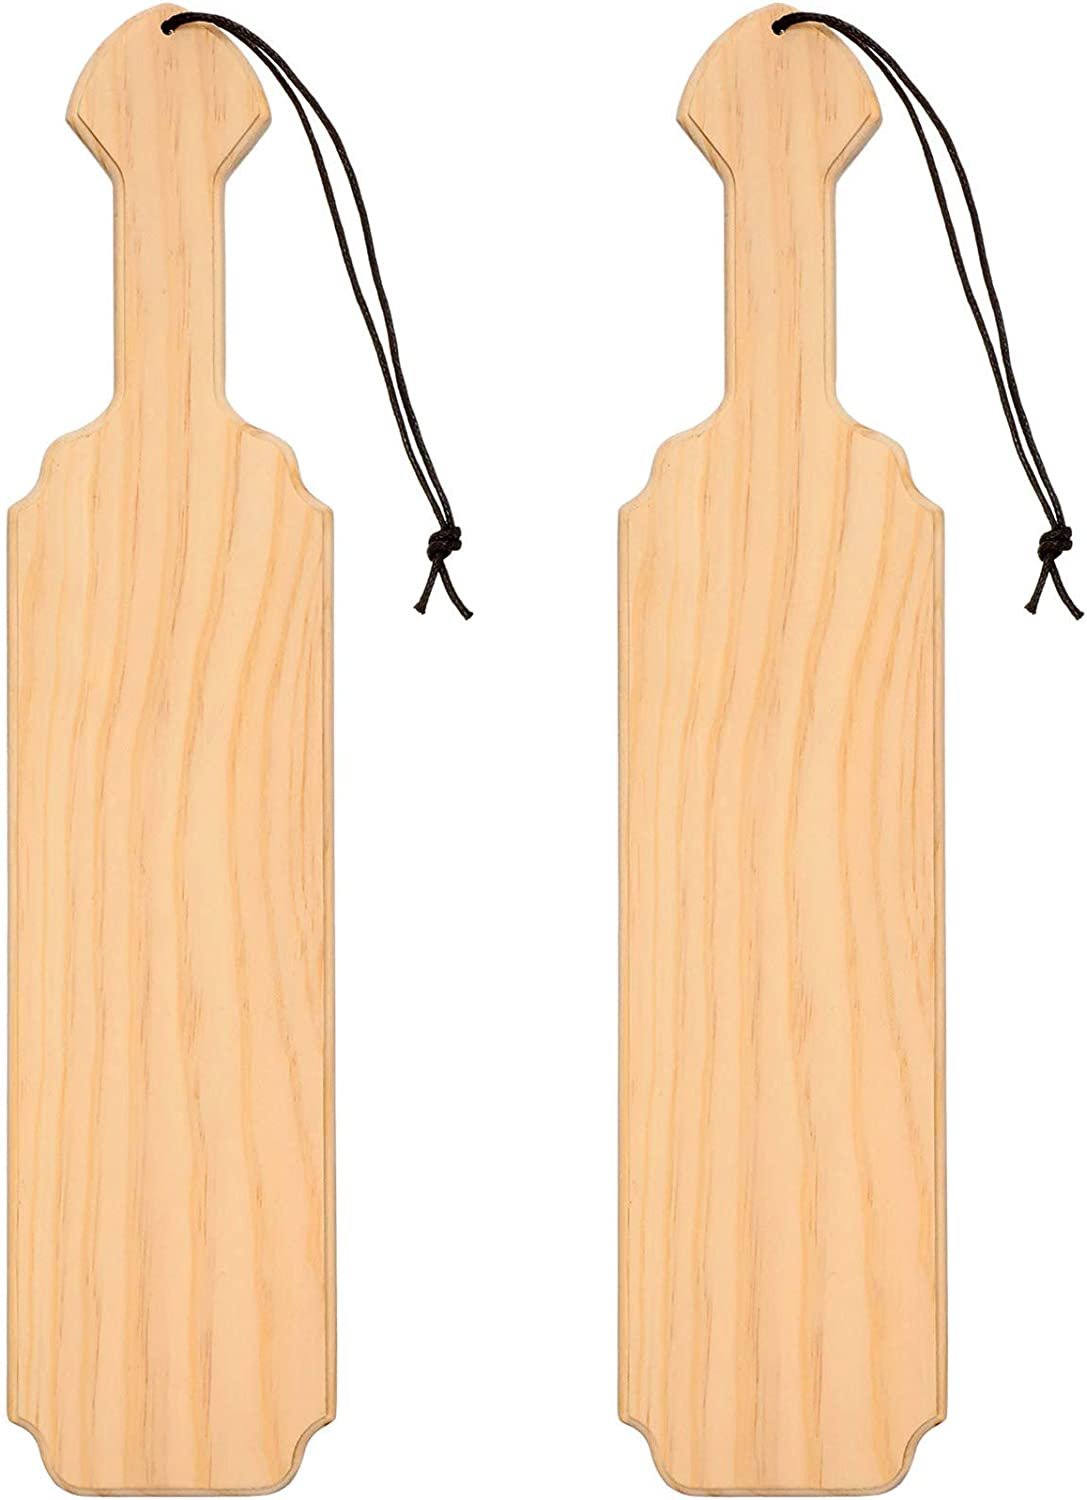 15 Inch Unfinished Paddle Wood Board Made of Solid Pine Wood Paddle for Arts Crafts Sorority Fraternity Home Decoration, 2 Pieces